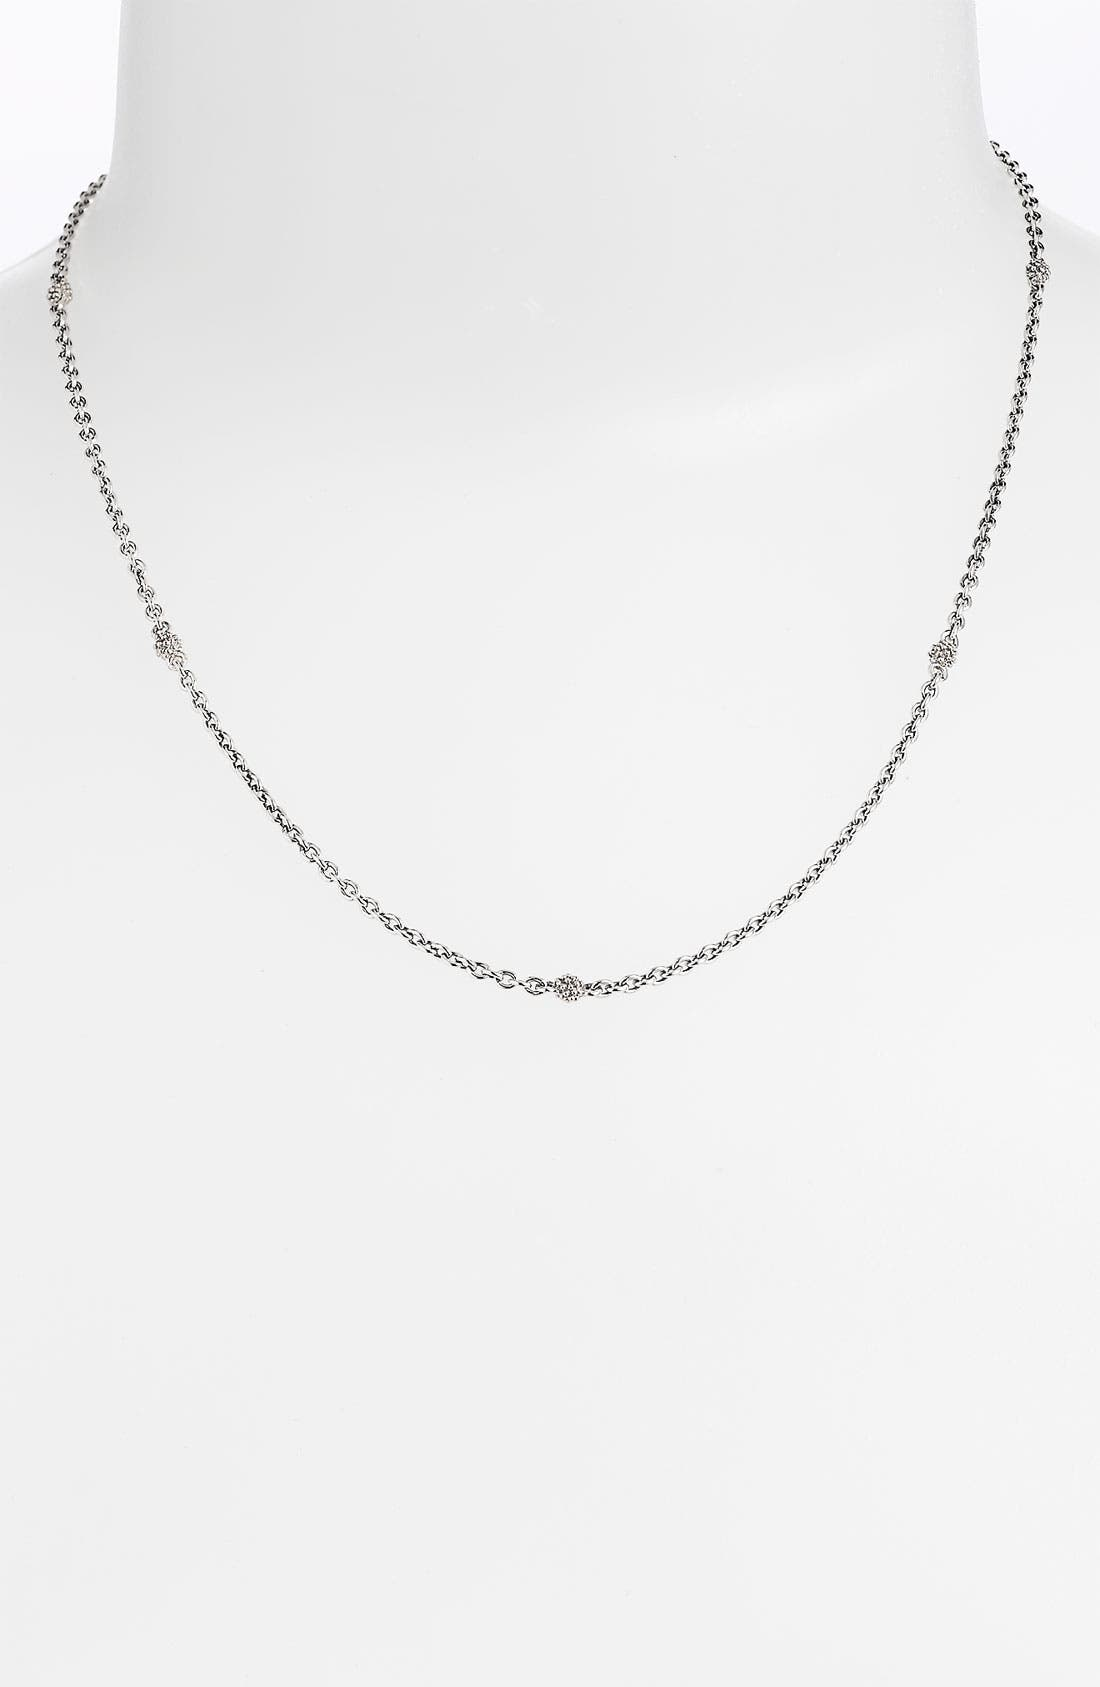 Caviar Station Chain Necklace,                             Main thumbnail 1, color,                             Sterling Silver